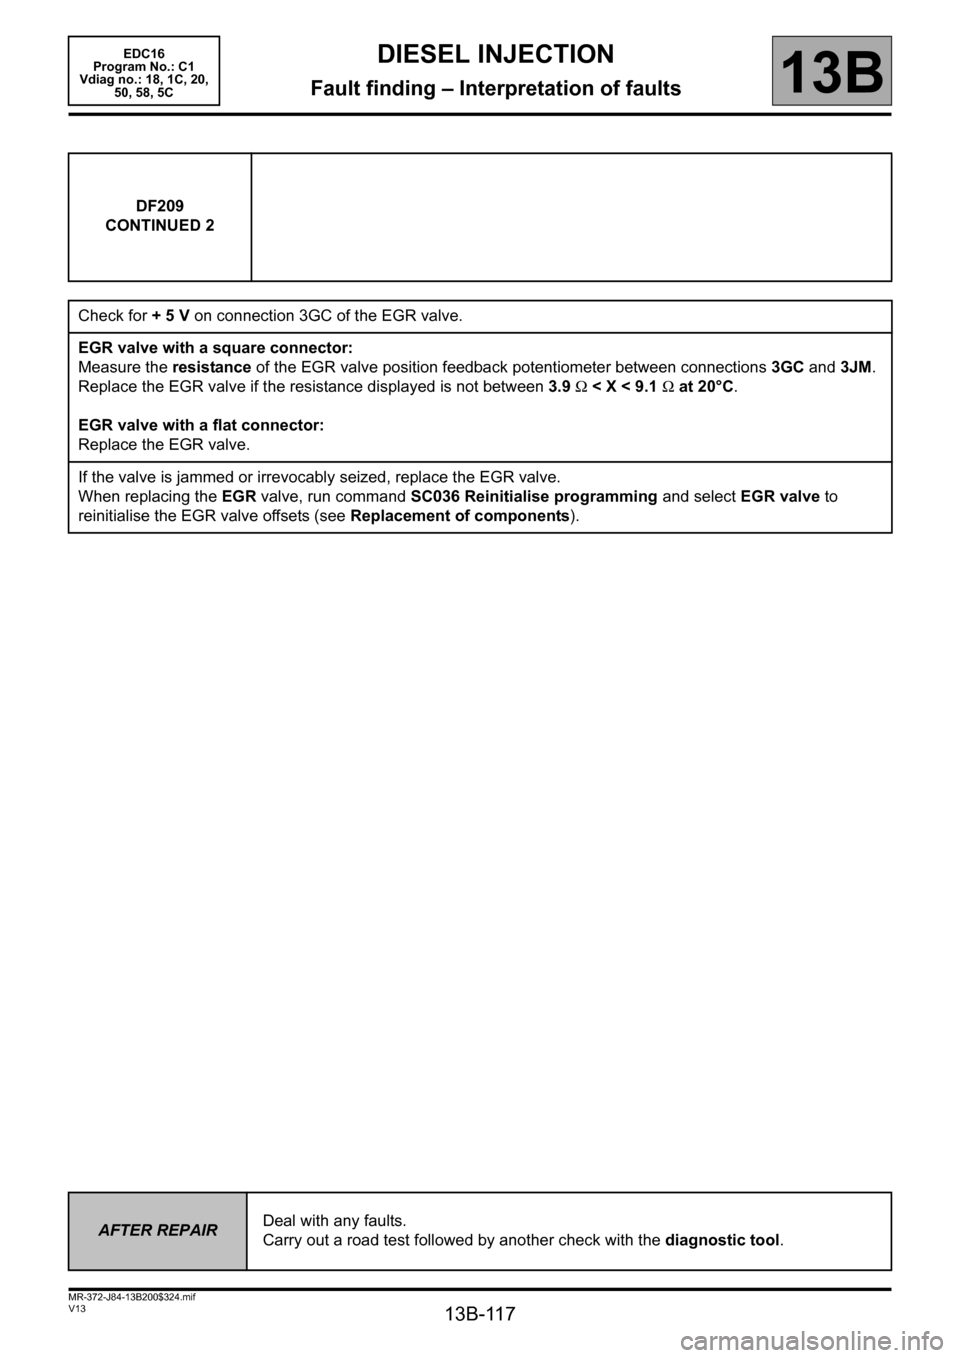 RENAULT SCENIC 2011 J95 / 3.G Engine And Peripherals EDC16 Workshop Manual, Page 117